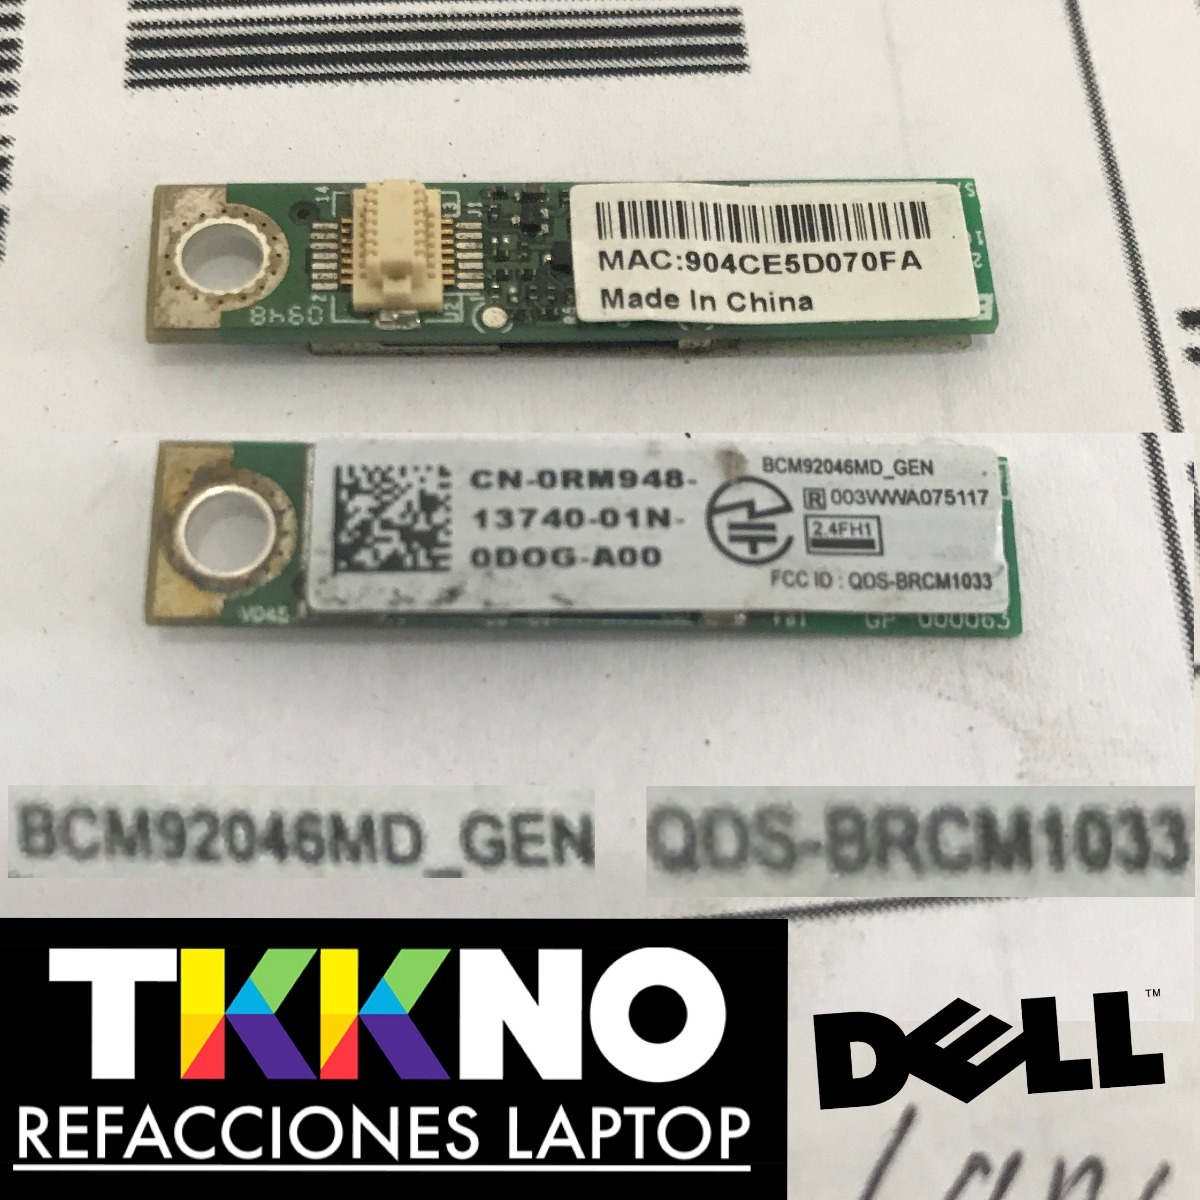 DELL Z600 BLUETOOTH DRIVER FOR MAC